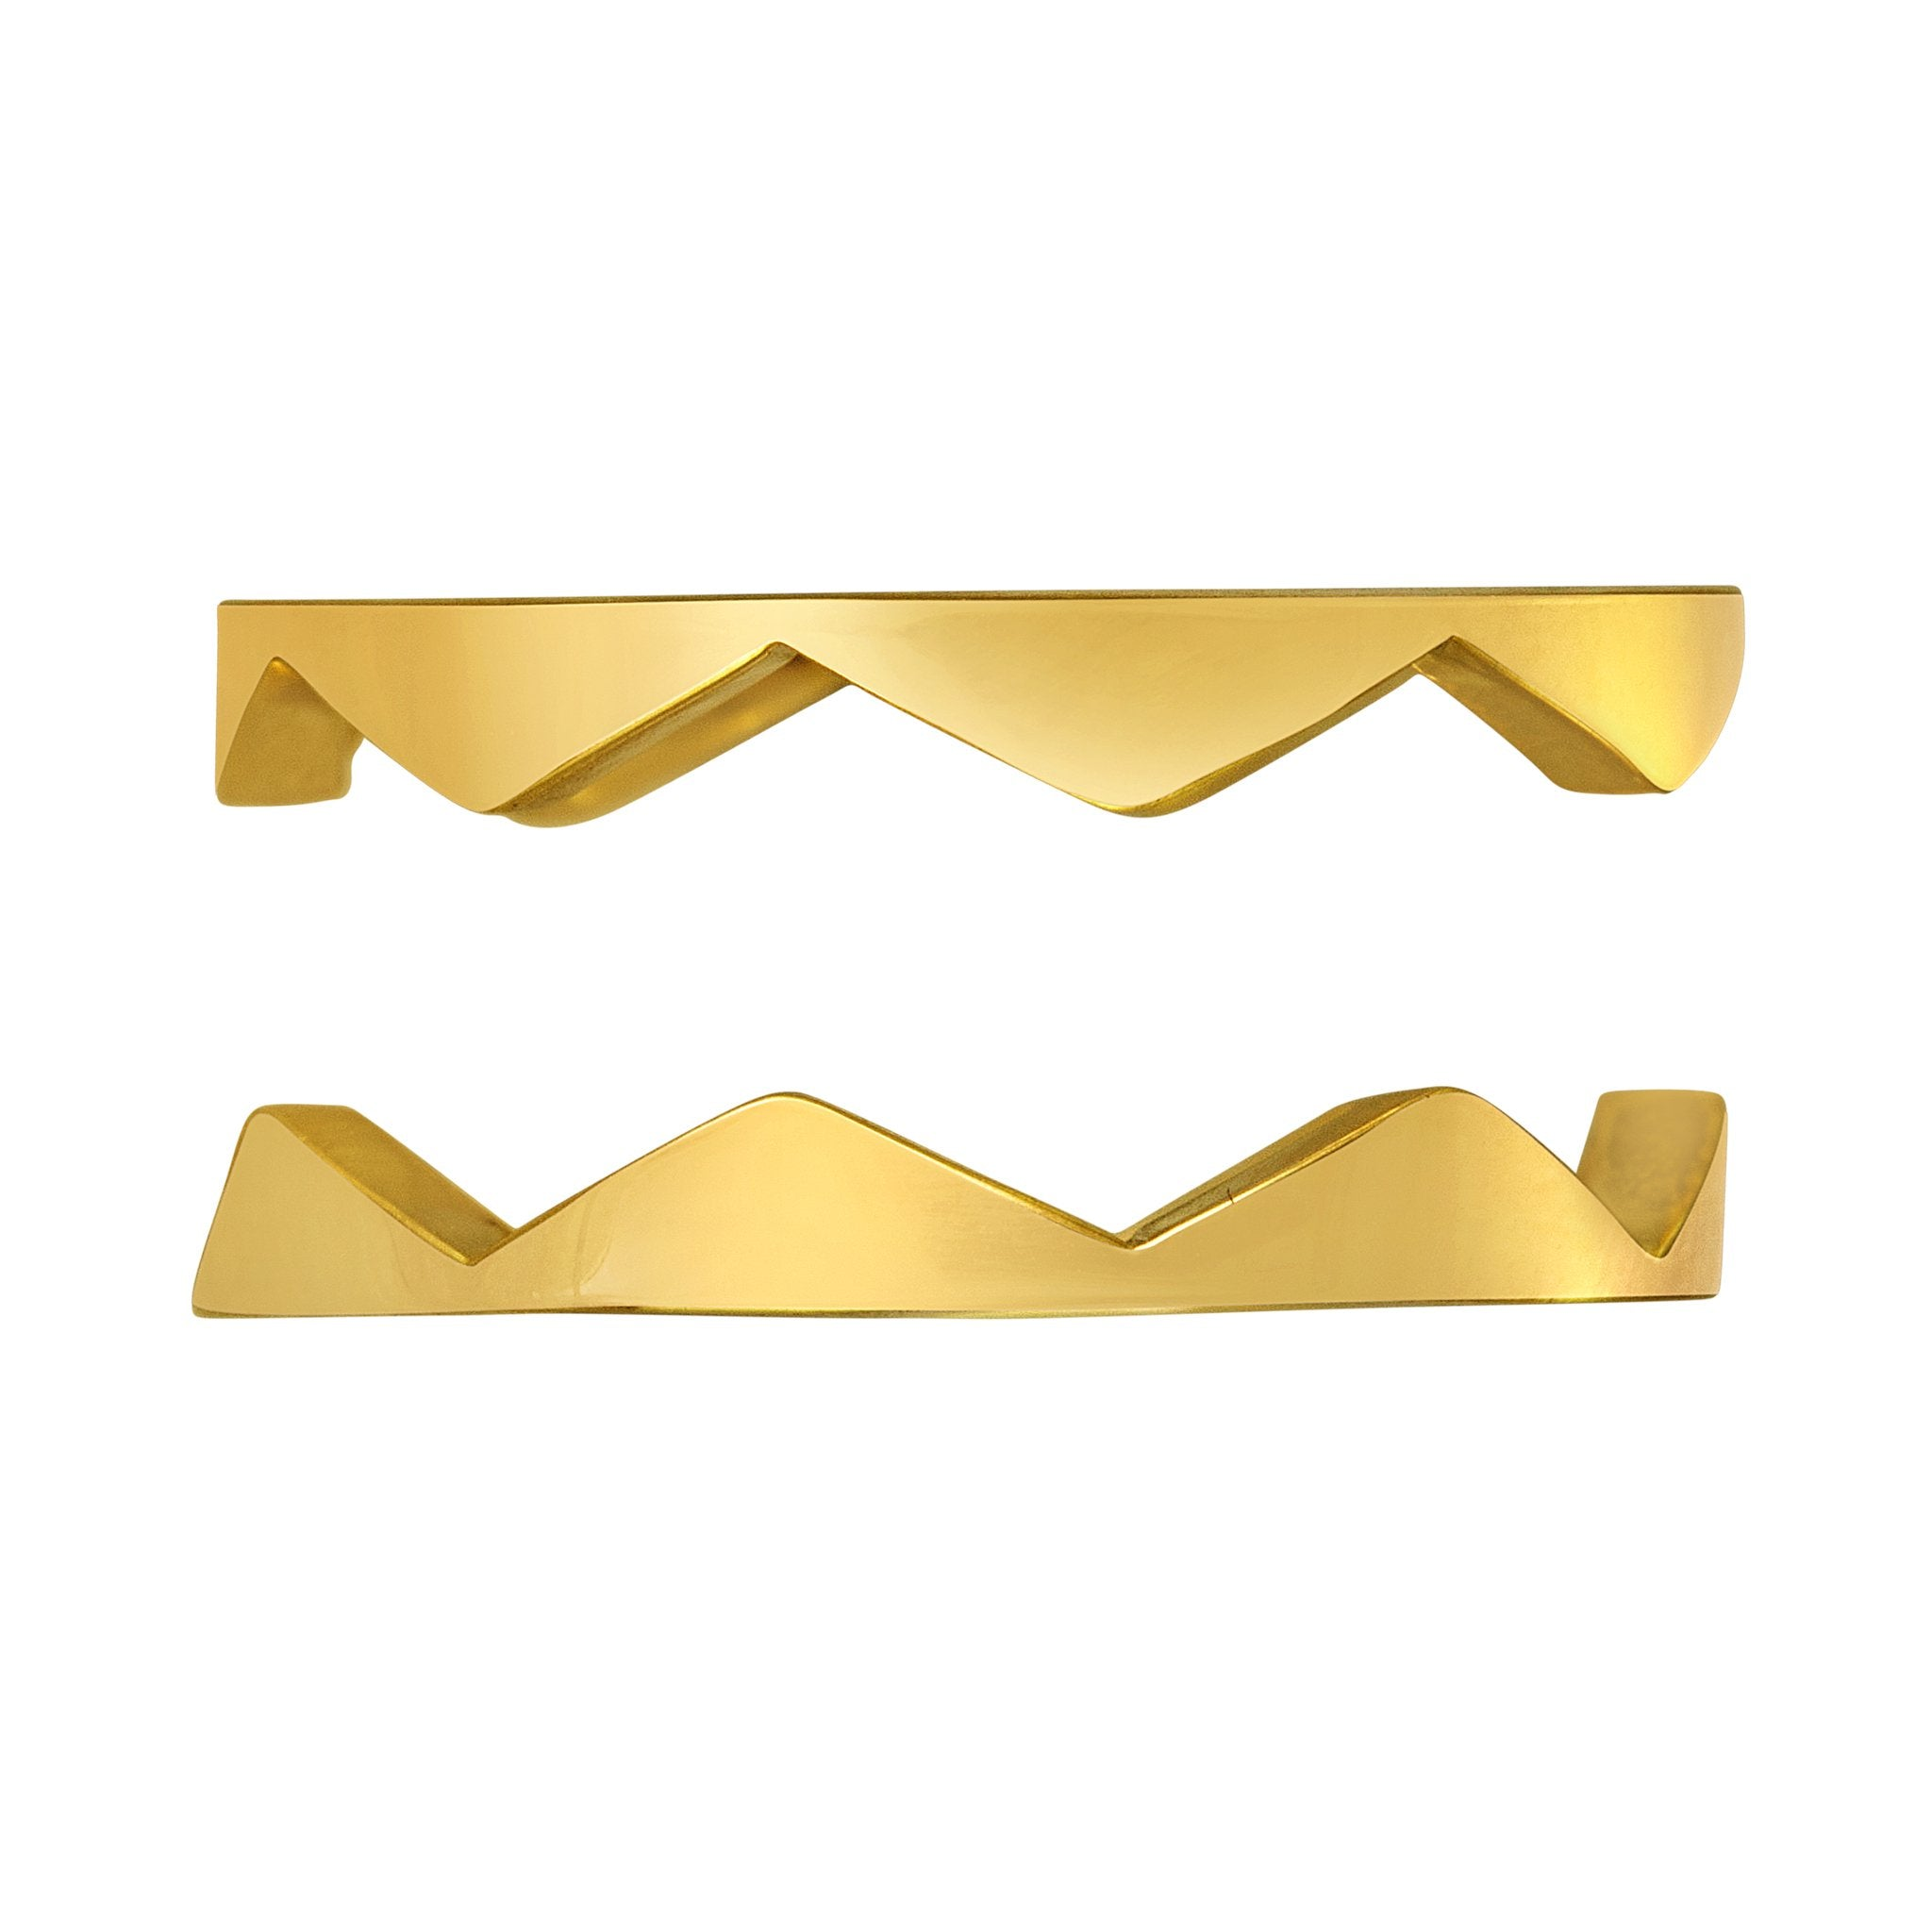 Zig Zag Band Ring: 18k Gold, Diamonds